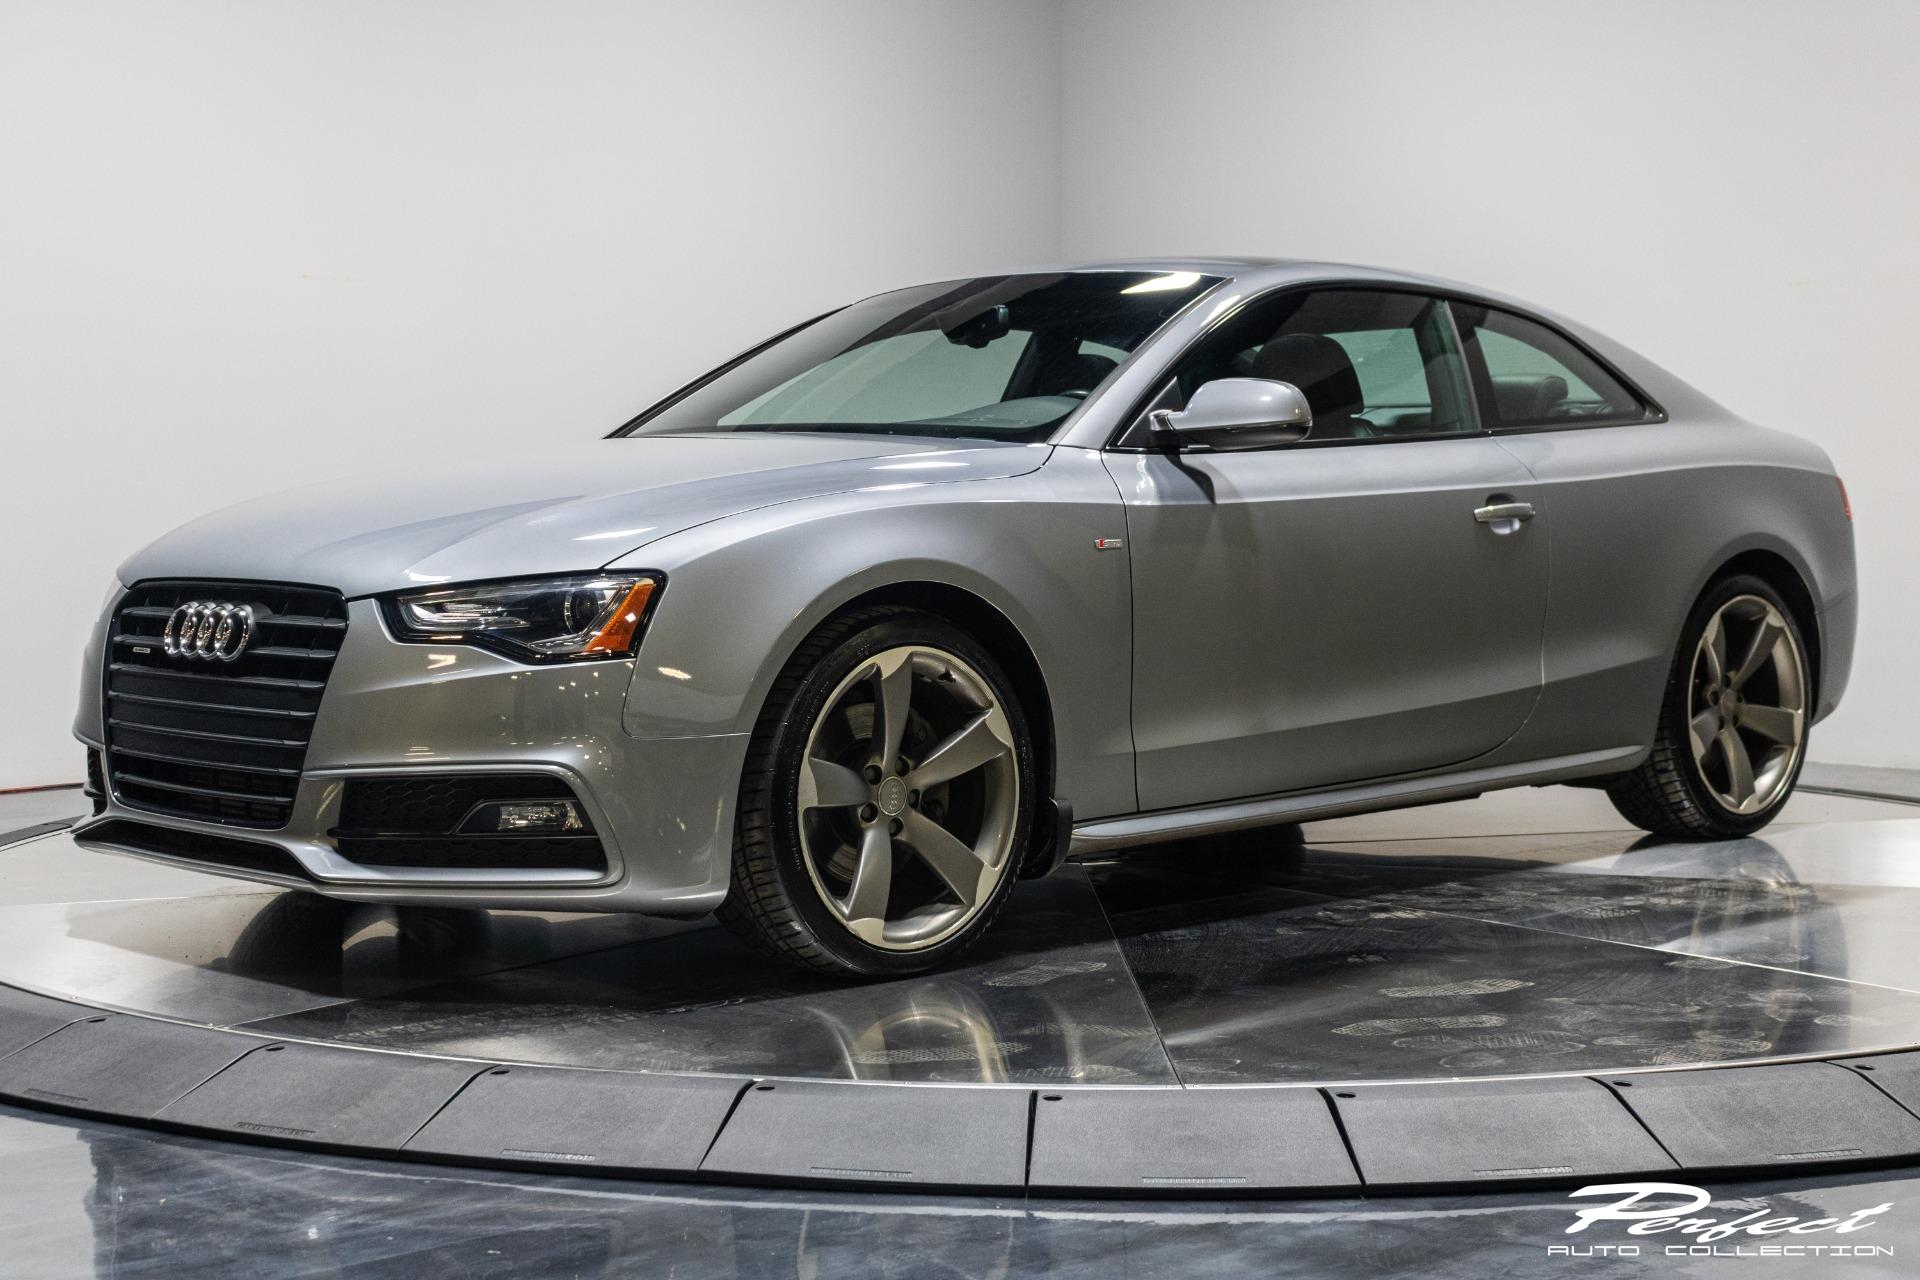 Used 2016 Audi A5 2.0T quattro Premium Plus for sale Sold at Perfect Auto Collection in Akron OH 44310 1